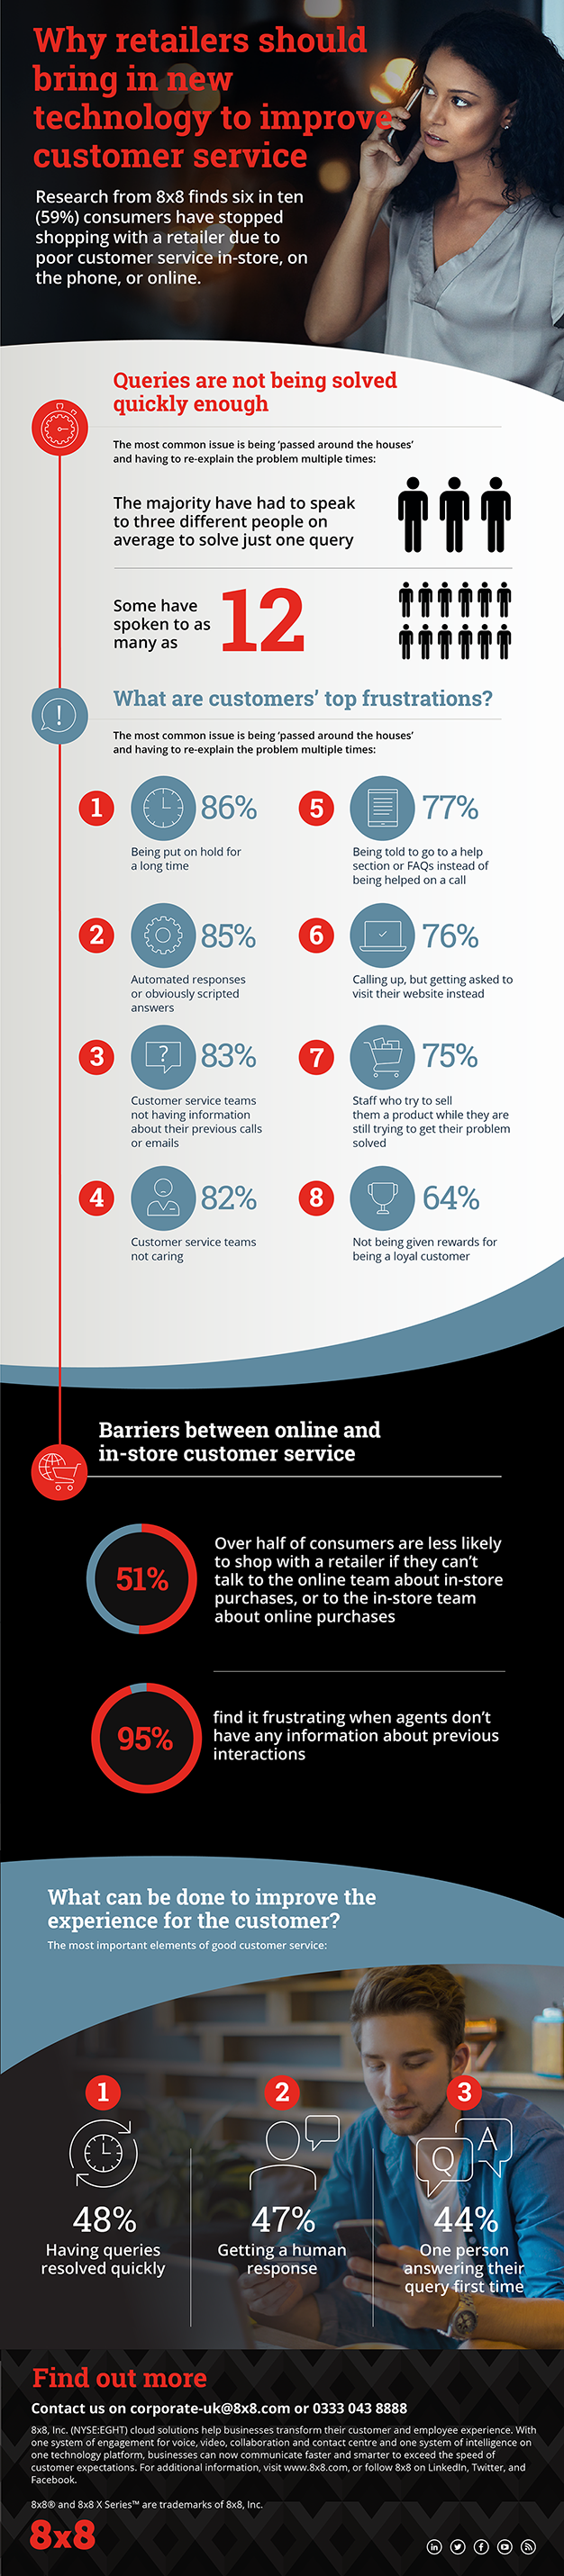 8x8-Infographic-why-retailers-should-bring-in-new-tech-to-improve-customer-service-628x2861